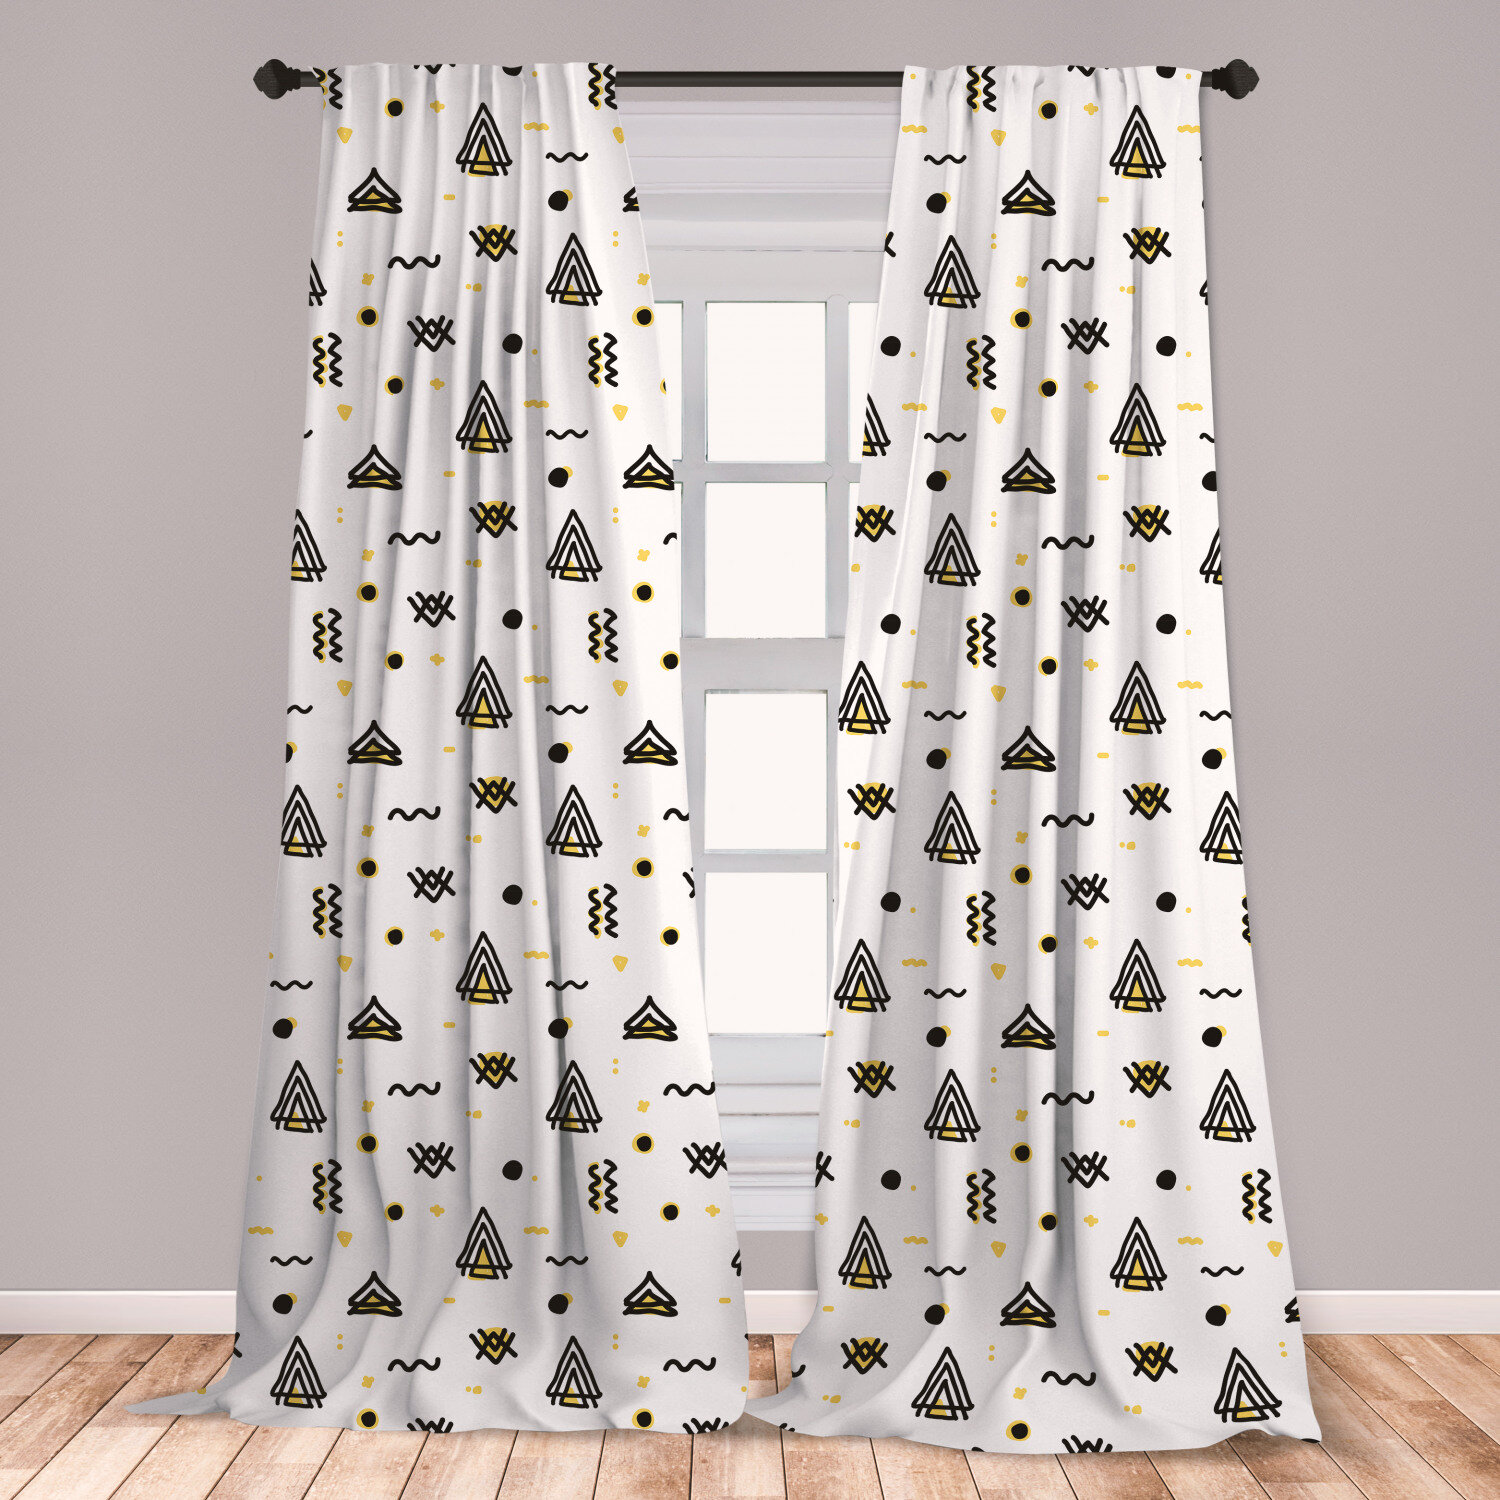 East Urban Home Ambesonne Tribal 2 Panel Curtain Set Abstract Angled Curved Stripes With Dots Triangles Doodle Style Composition Lightweight Window Treatment Living Room Bedroom Decor 56 X 95 Yellow Black White Wayfair